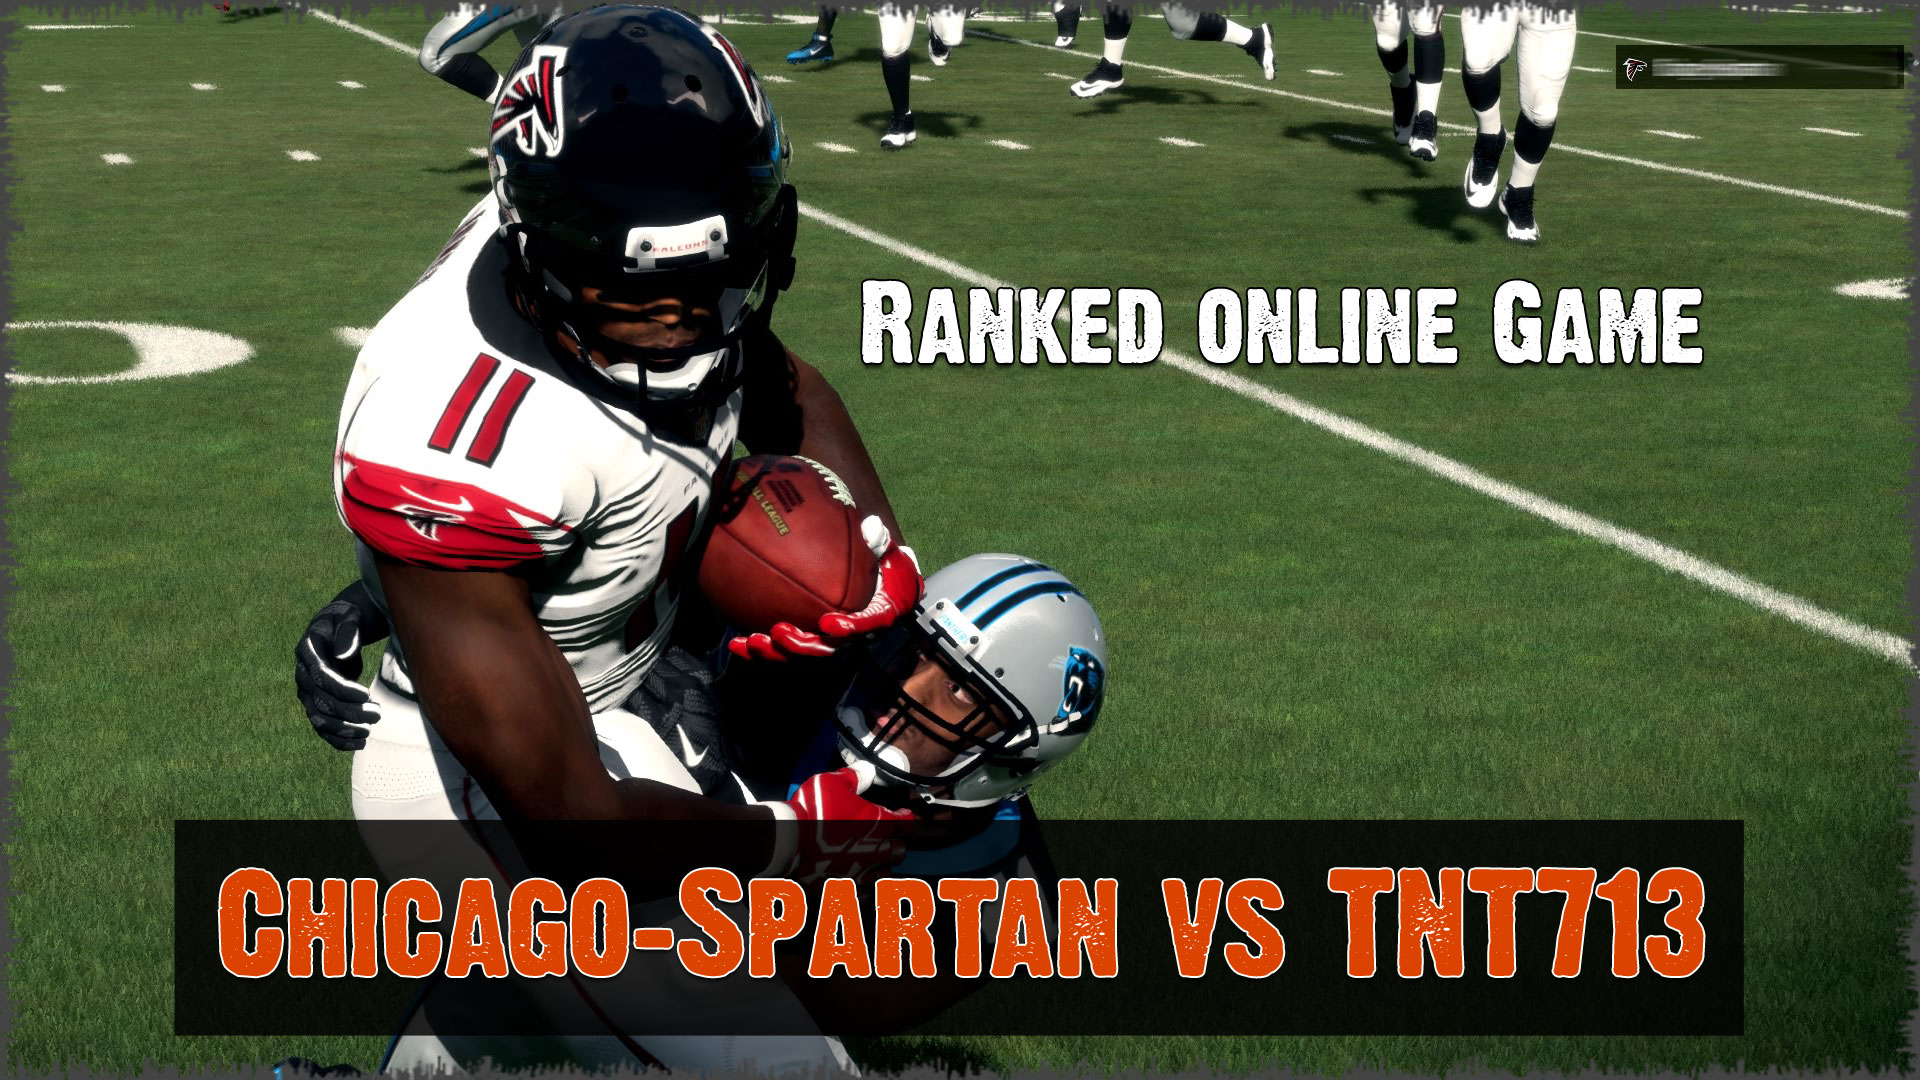 images/articles/Chicago-Spartan.jpg